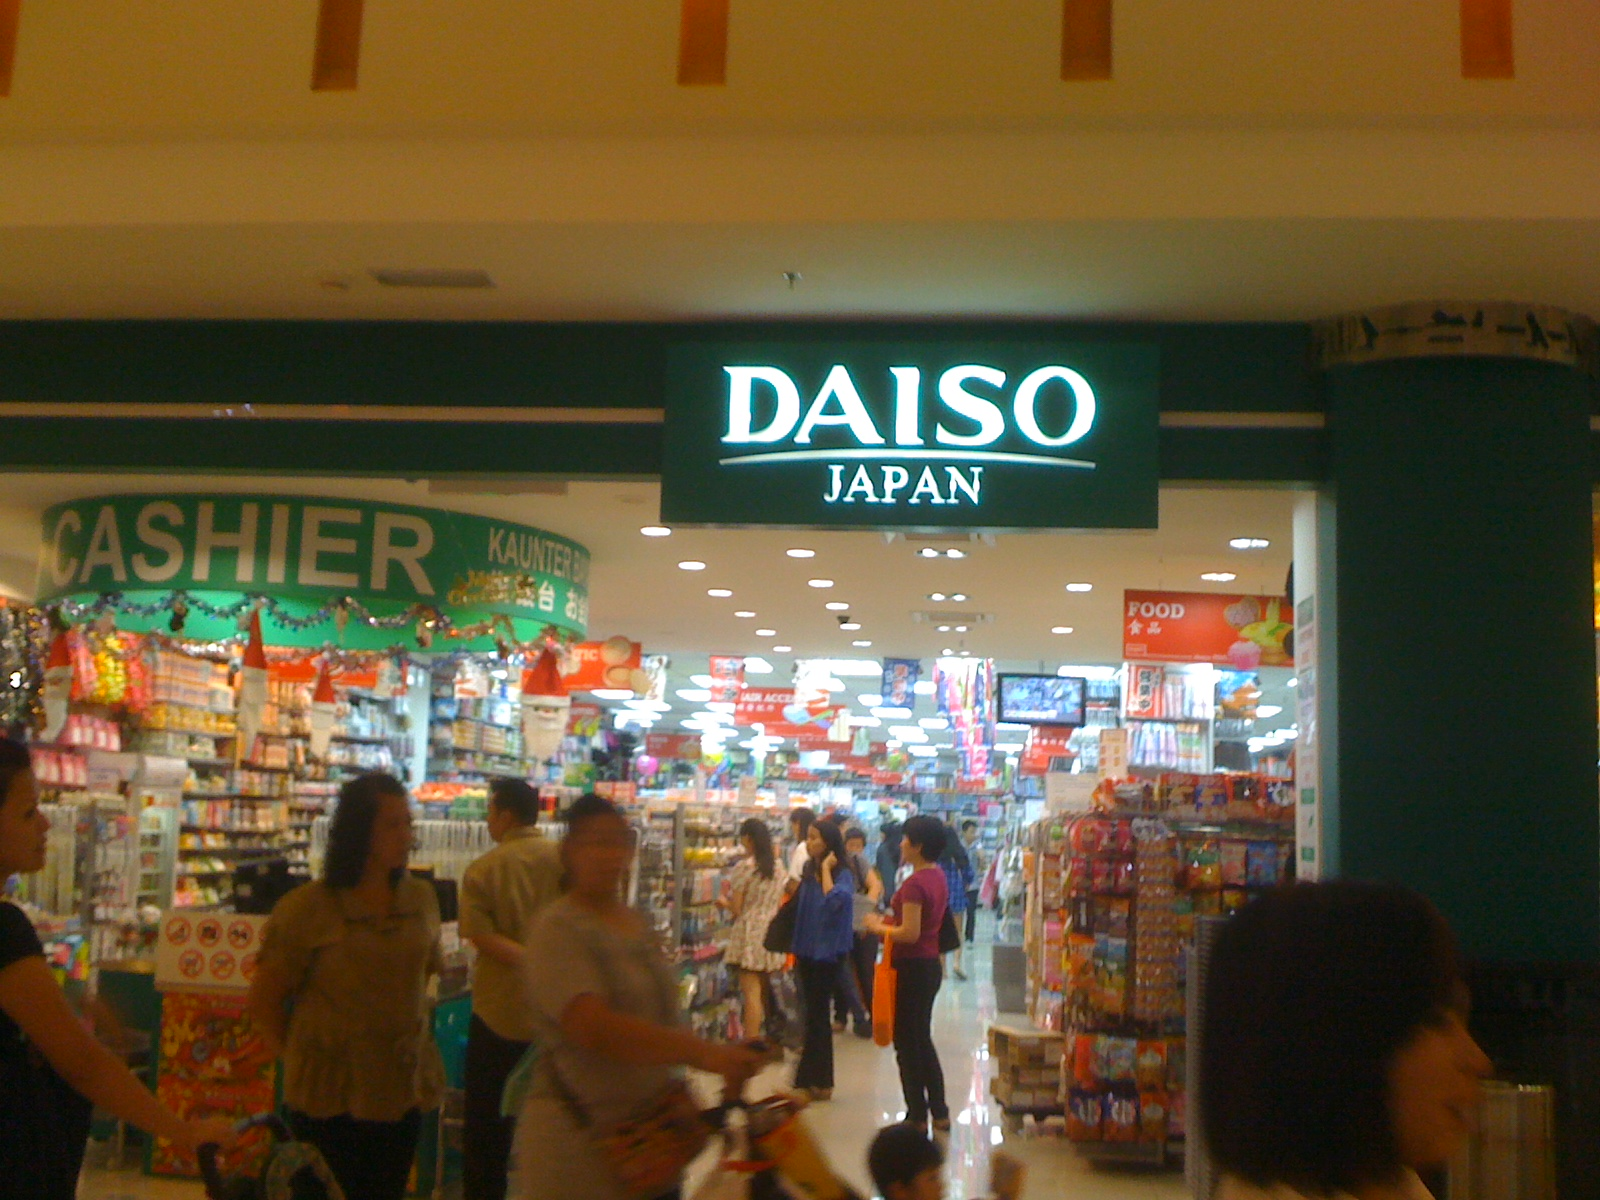 daiso background 32 daiso japan cashier interview questions and 19 interview reviews free interview details posted anonymously by daiso japan interview candidates.